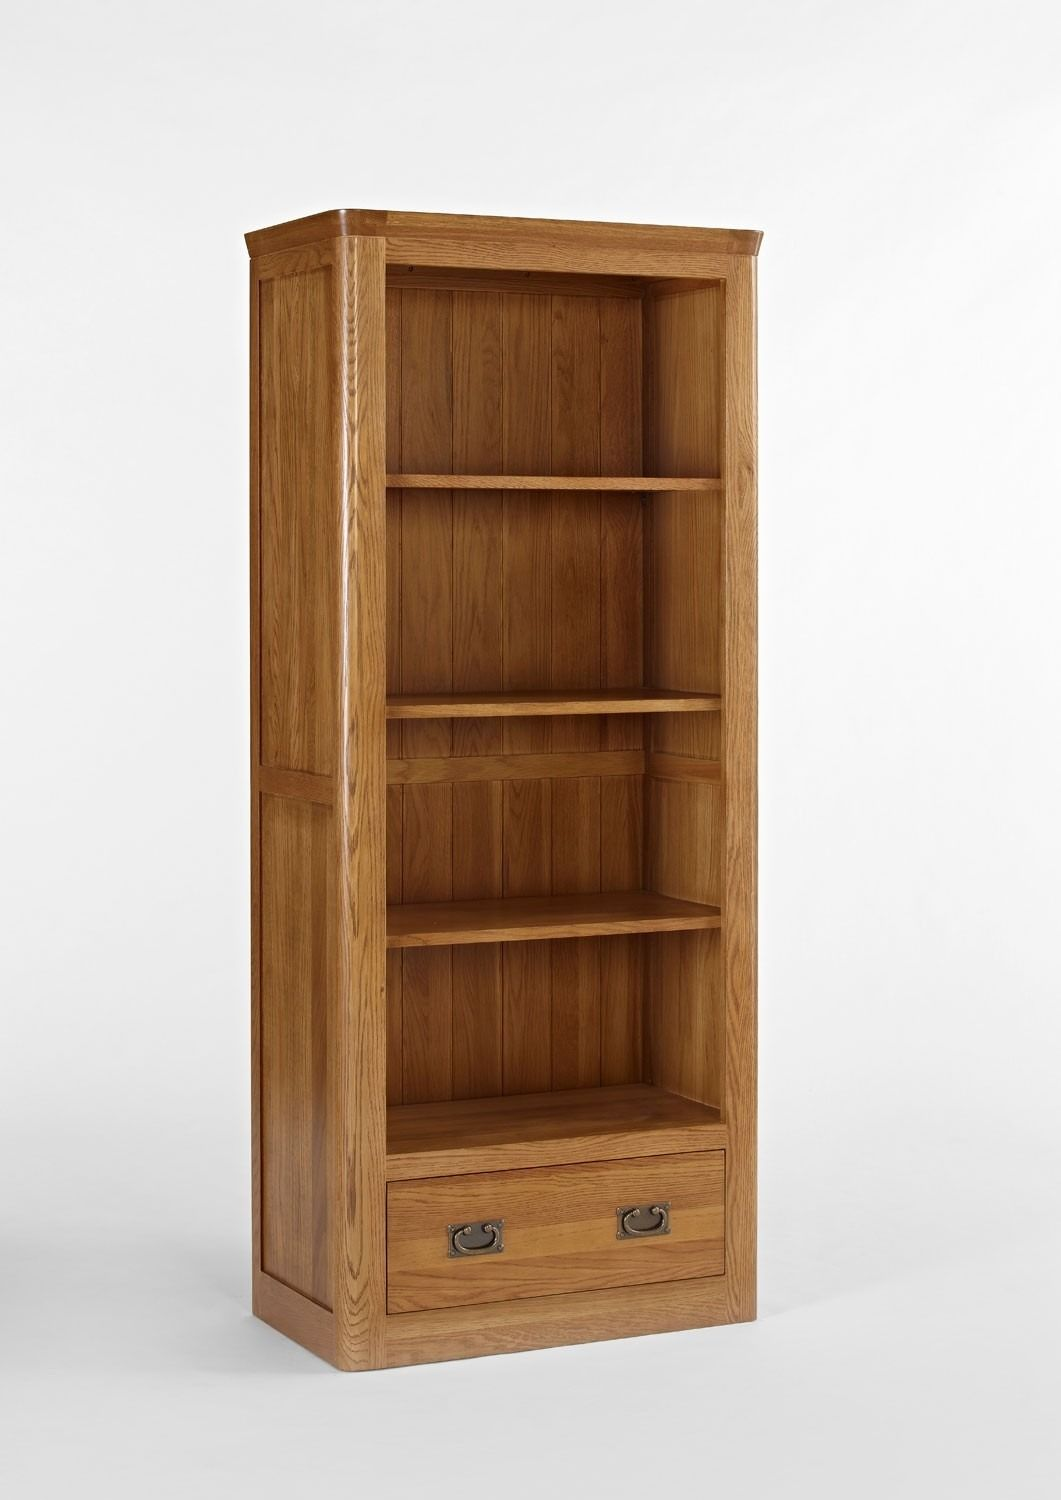 anders with premium singapore retailer drawer products s furniture rail bookcase drawers bookcases picket leaning